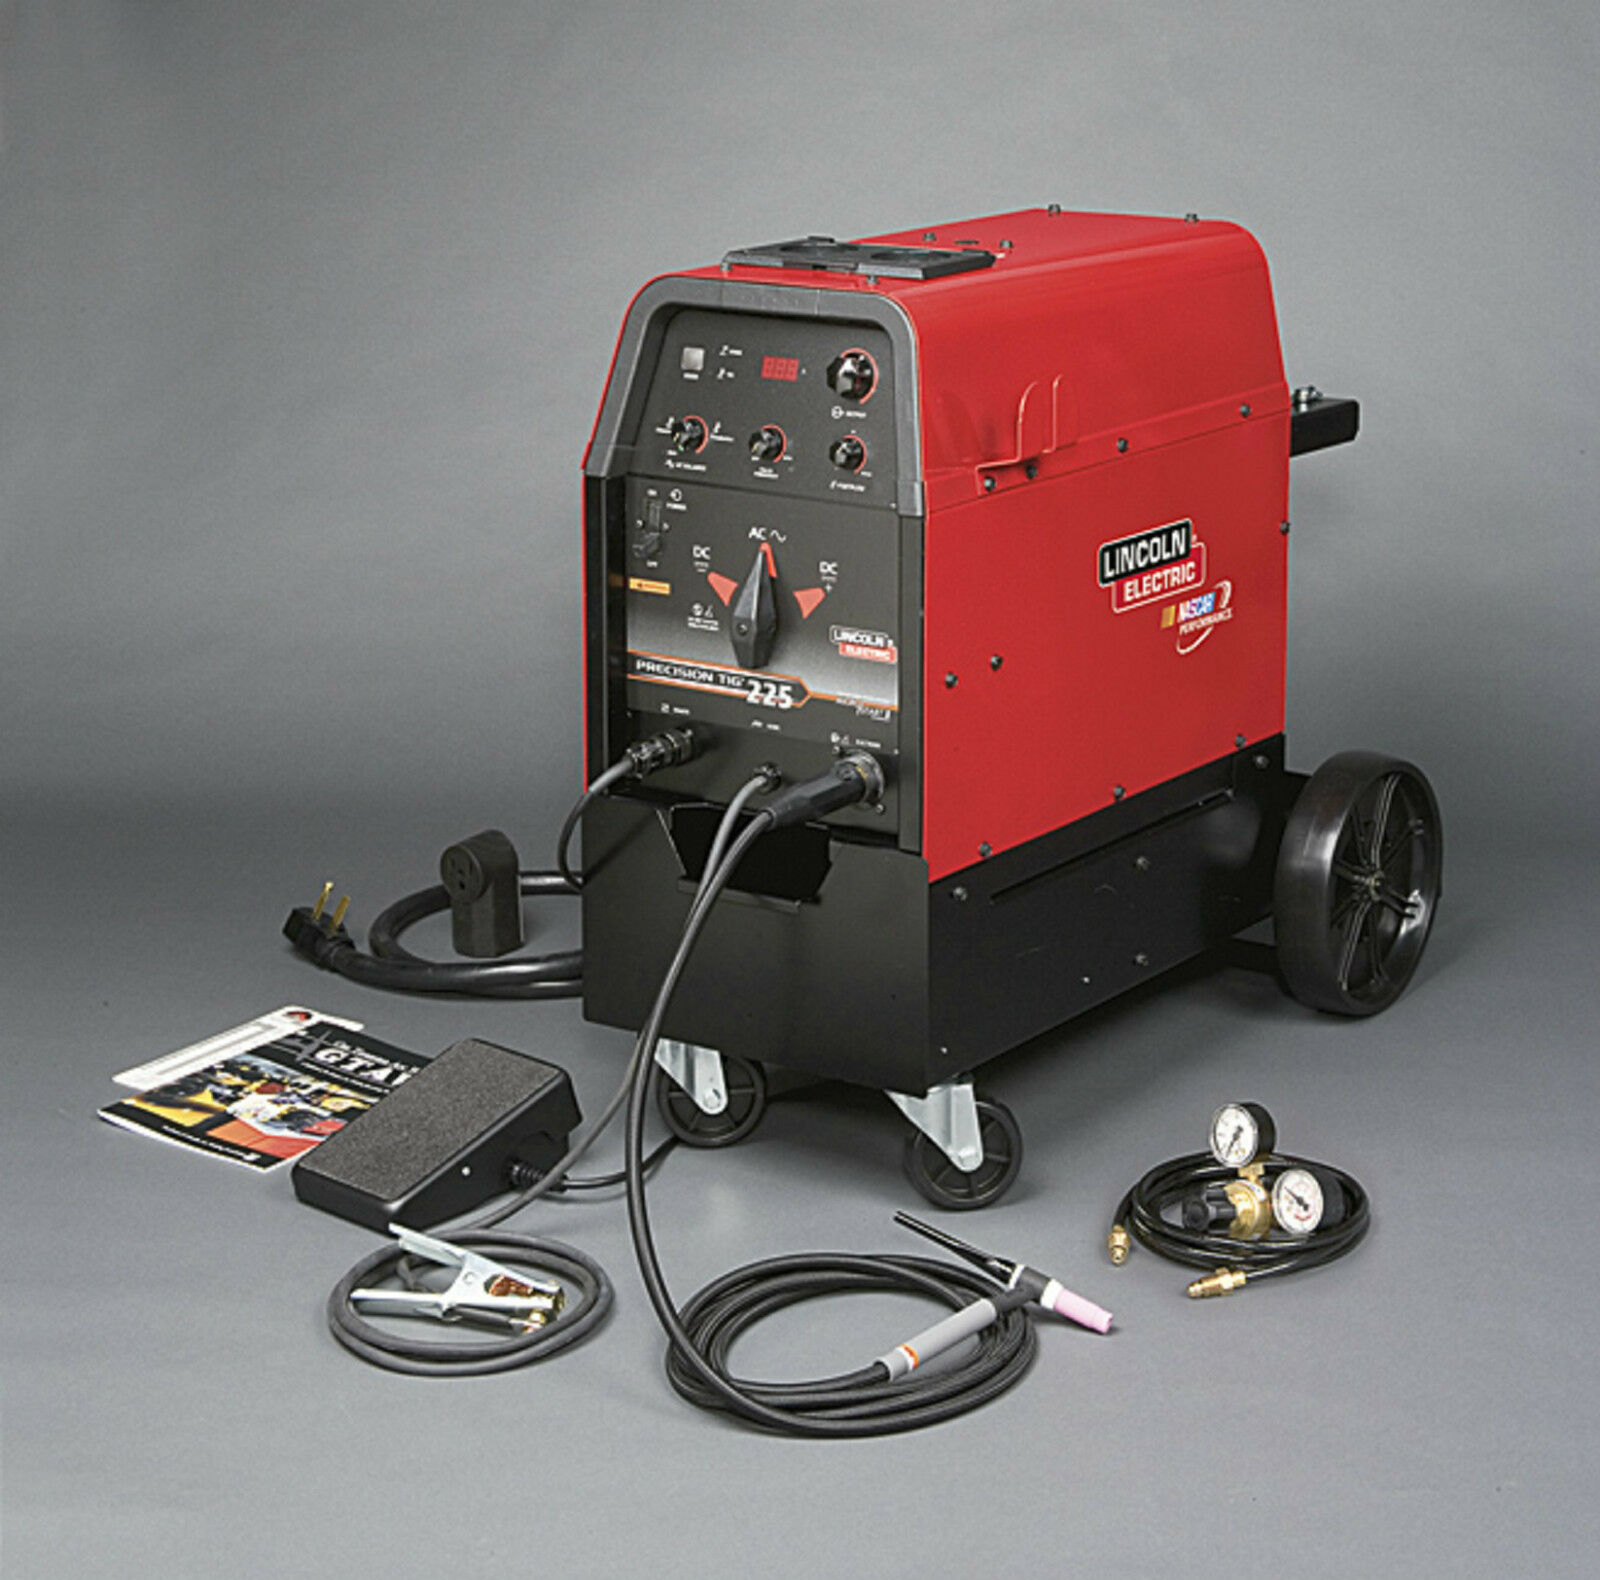 Lincoln Precision Tig 225 Ready Pak With Cart K2535-2